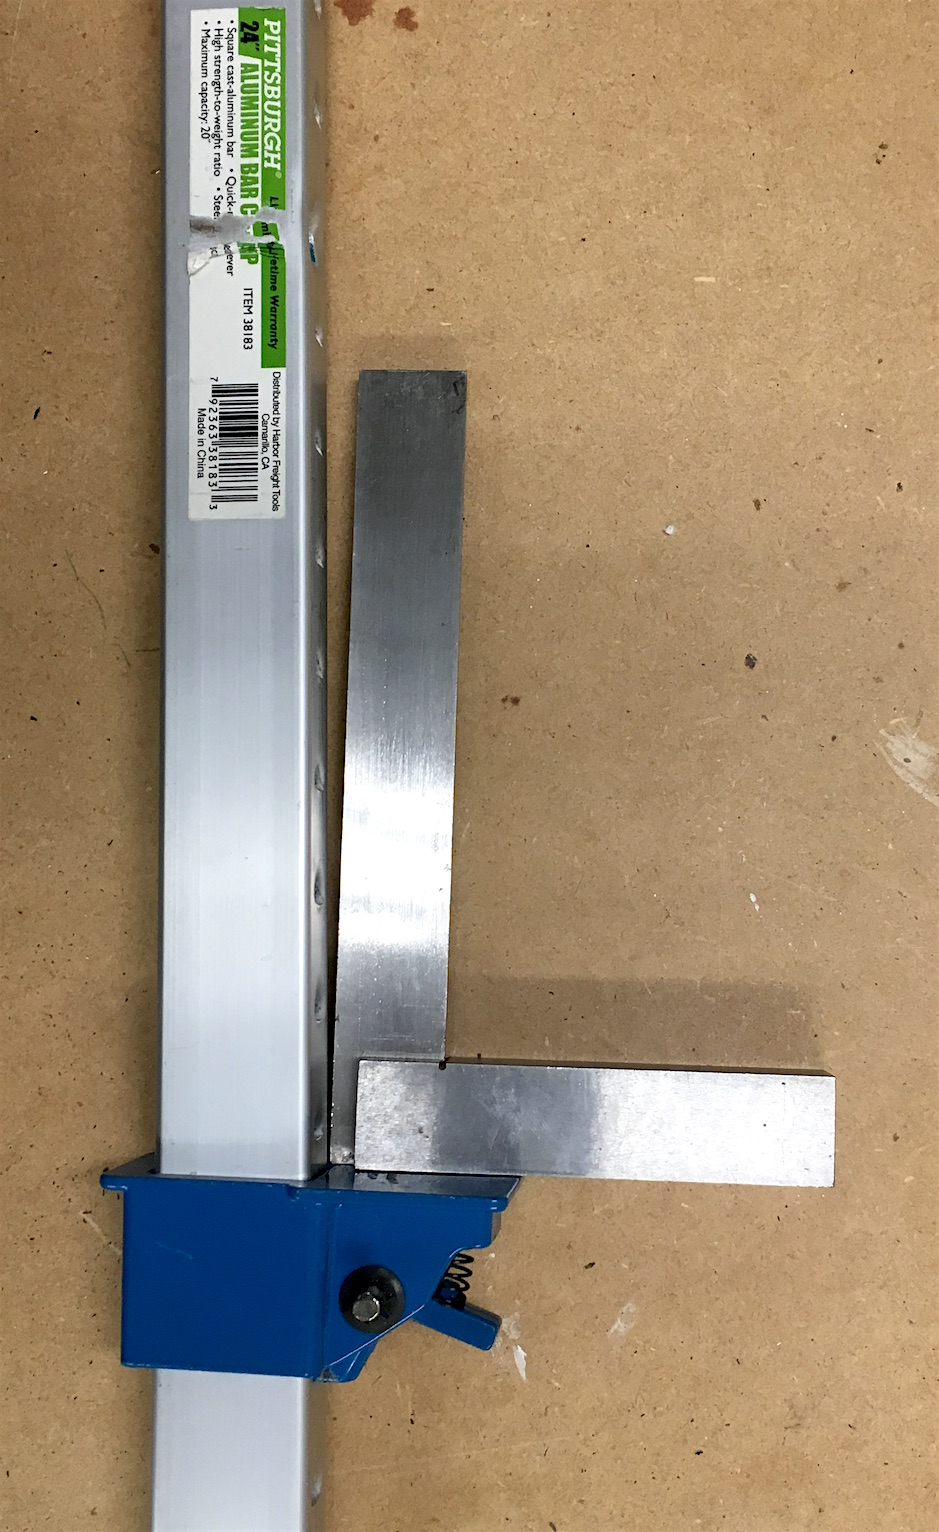 Harbor Freight Bar Clamp 60539 Review